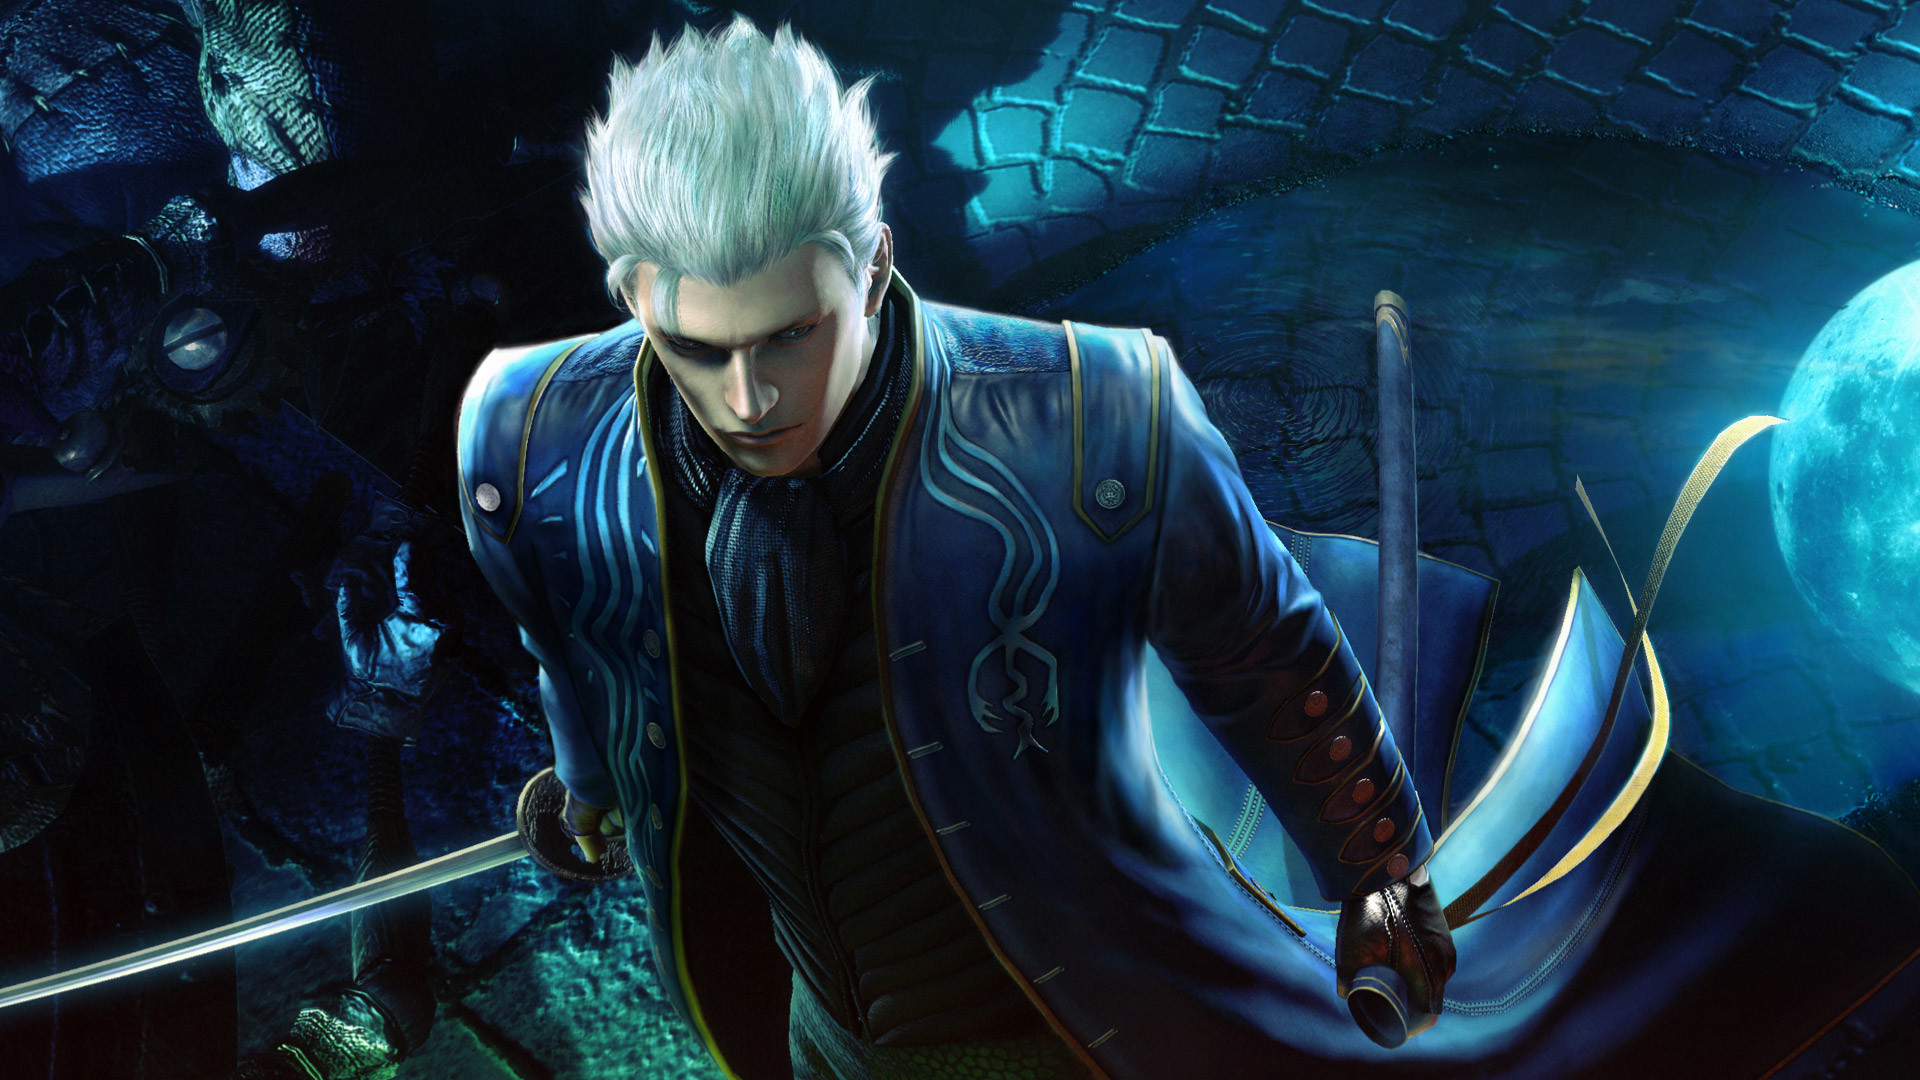 Devil May Cry 4 Wallpaper (73+ Pictures